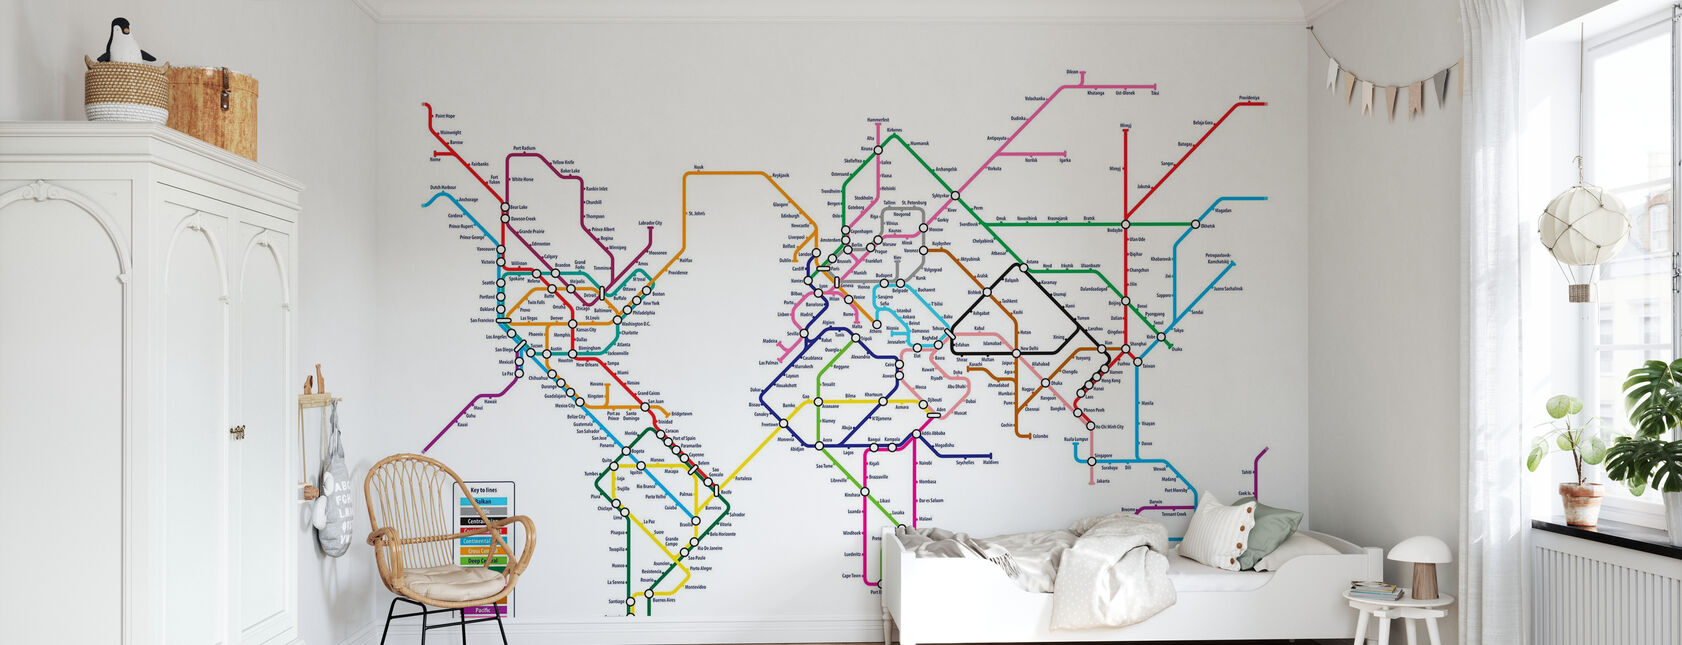 Metro World Map - Wallpaper - Kids Room